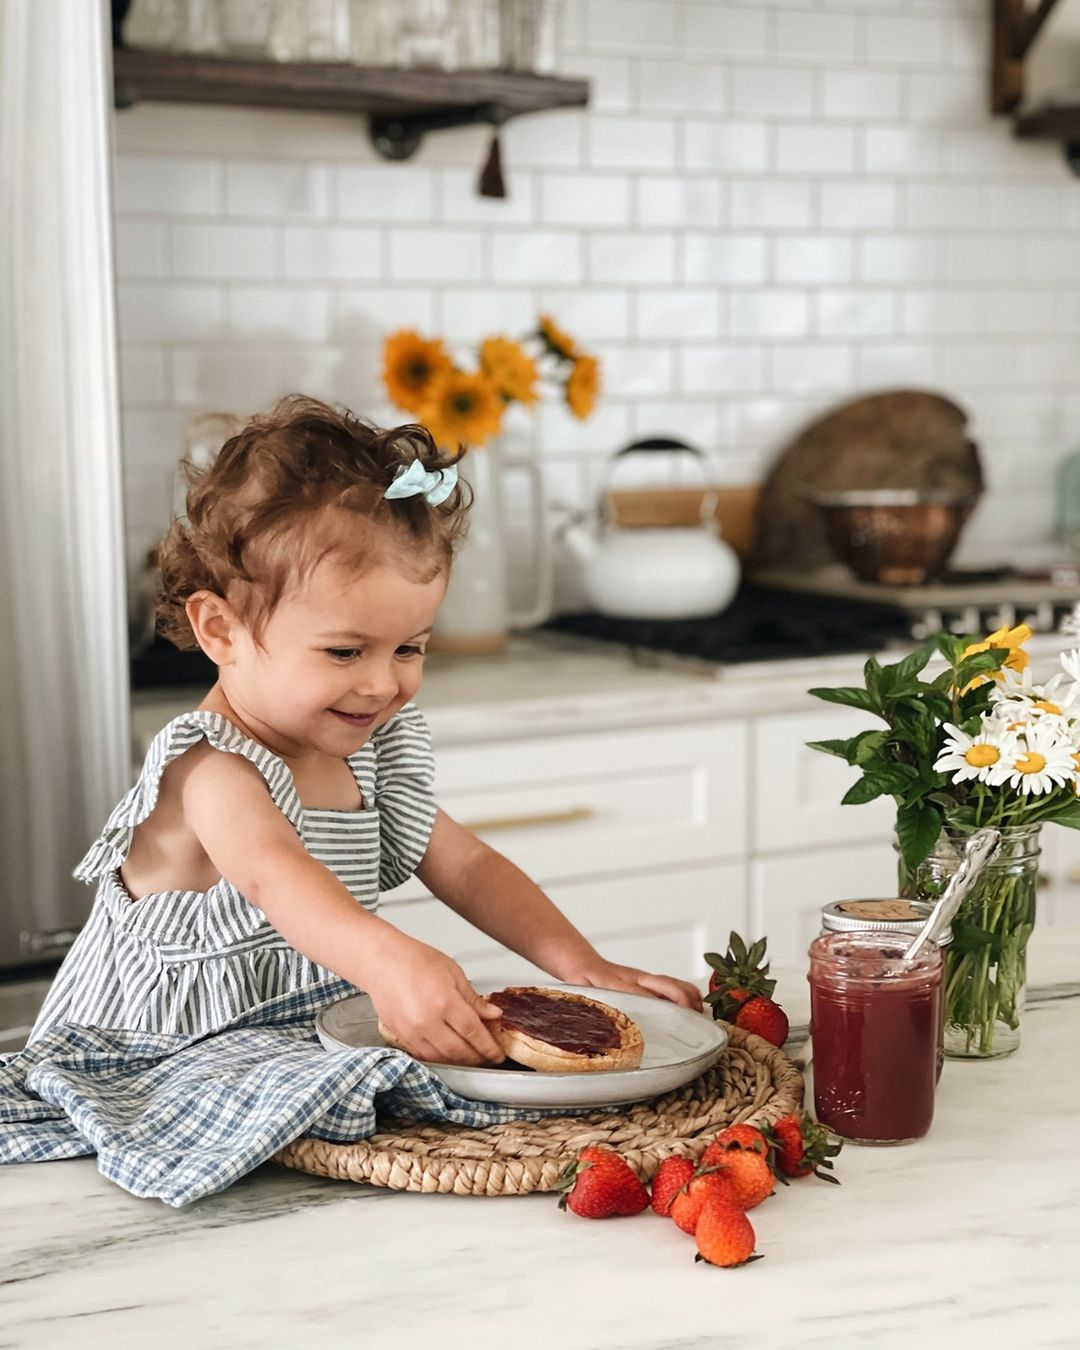 kid on counter with jam